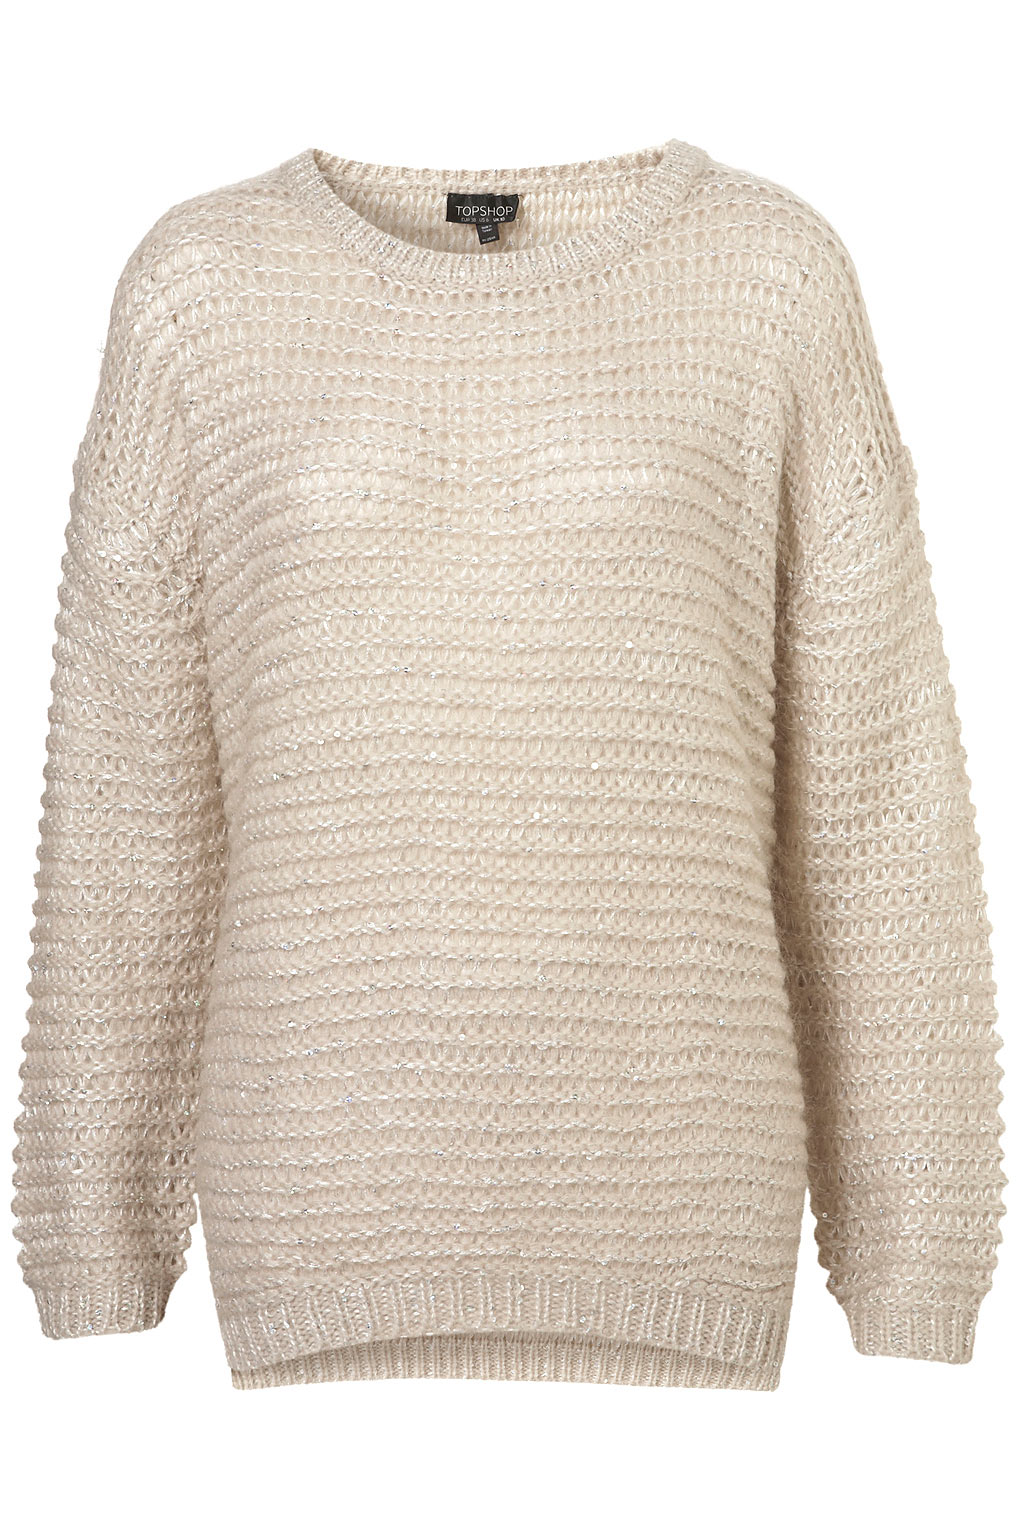 Knitwear Styles For 2013 Winter Comfort Meets Glam In